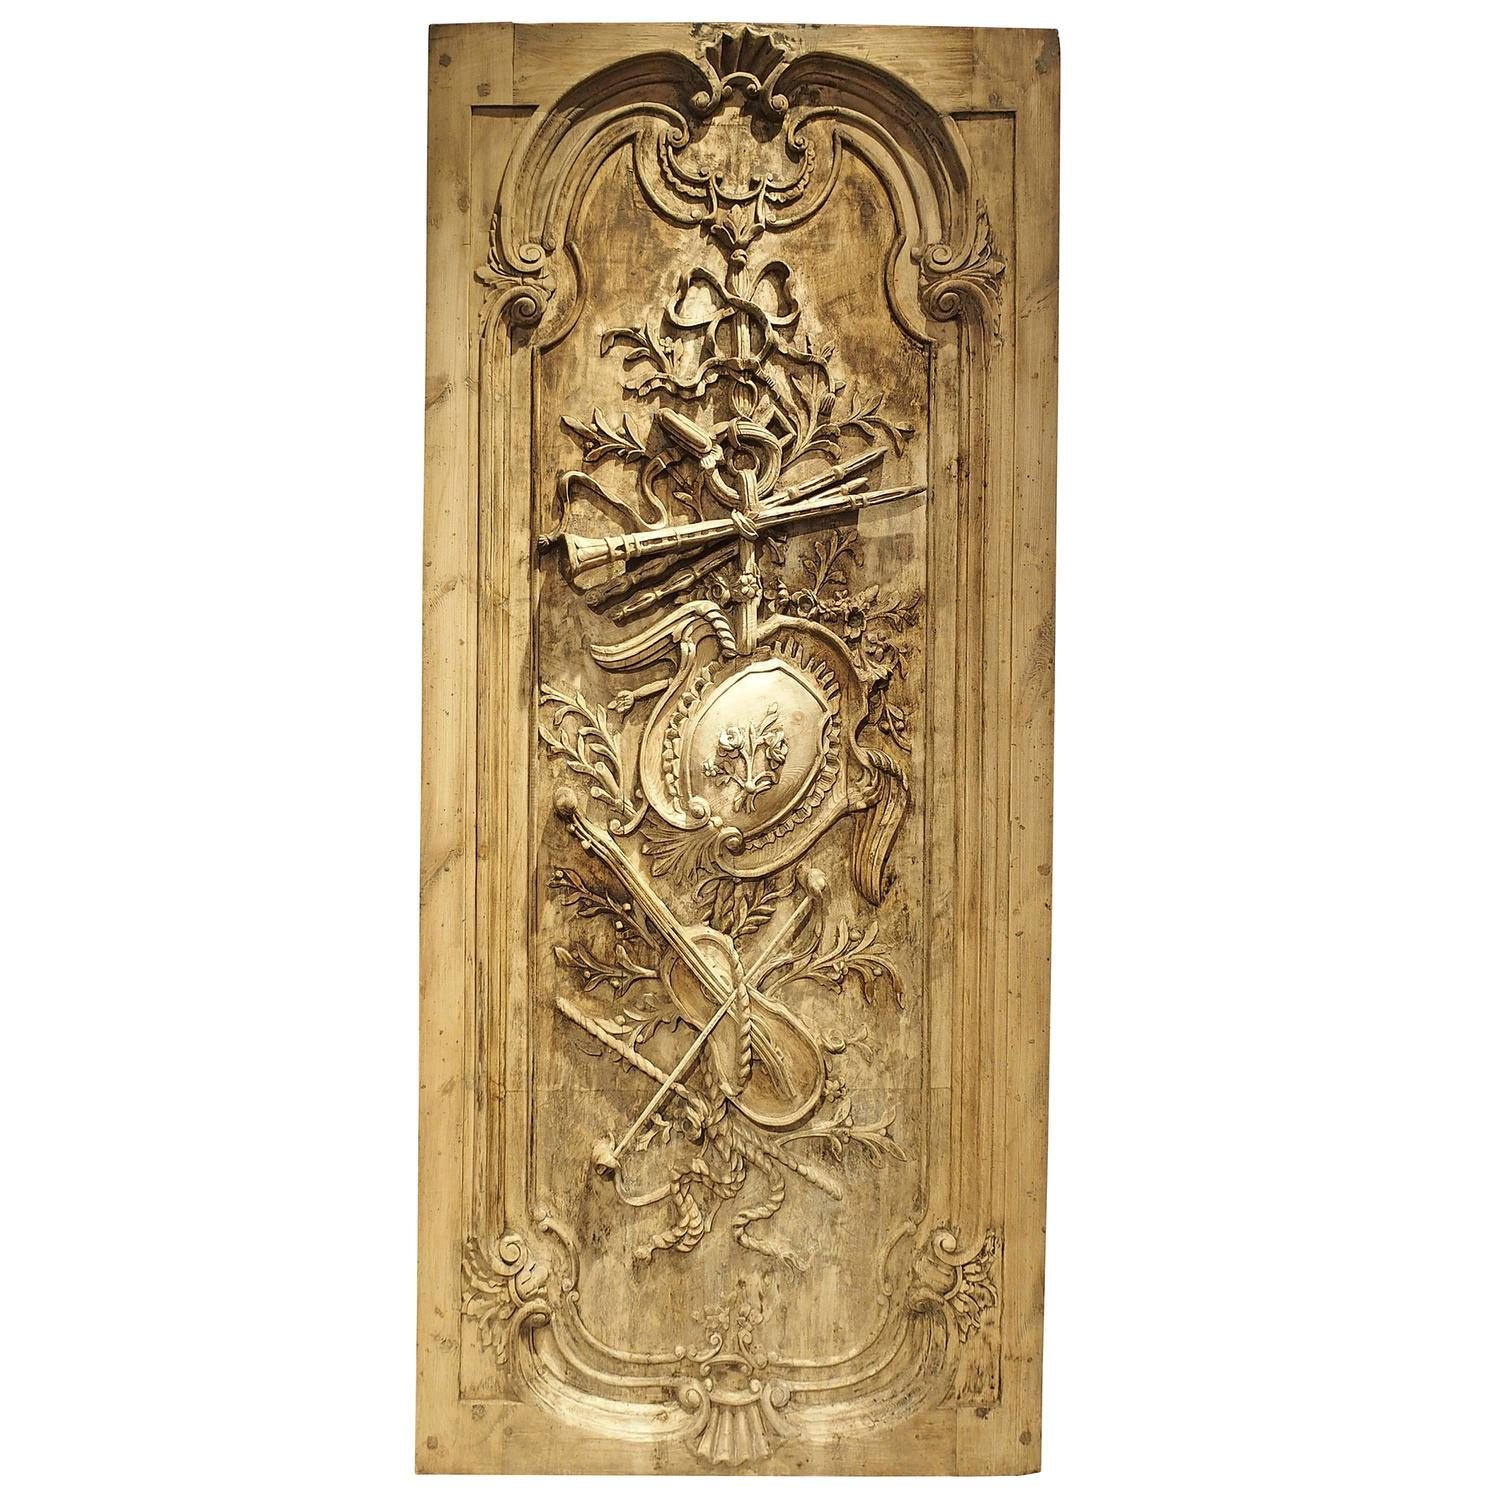 Carved Door Panels : Large louis xvi style carved door or panel from france at